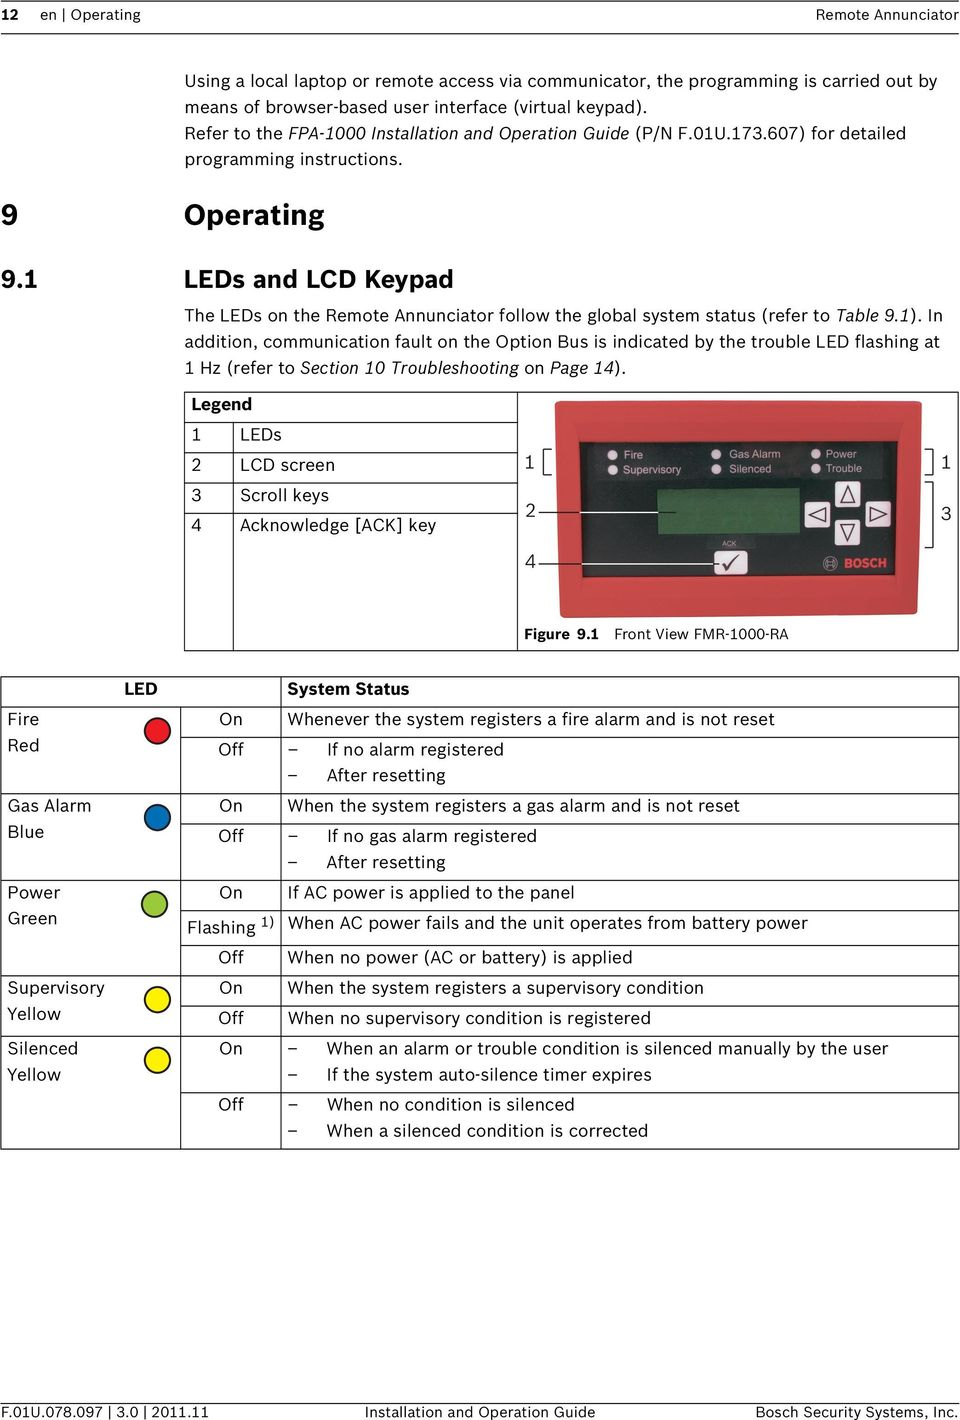 1 LEDs and LCD Keypad The LEDs on the Remote Annunciator follow the global system status (refer to Table 9.1).